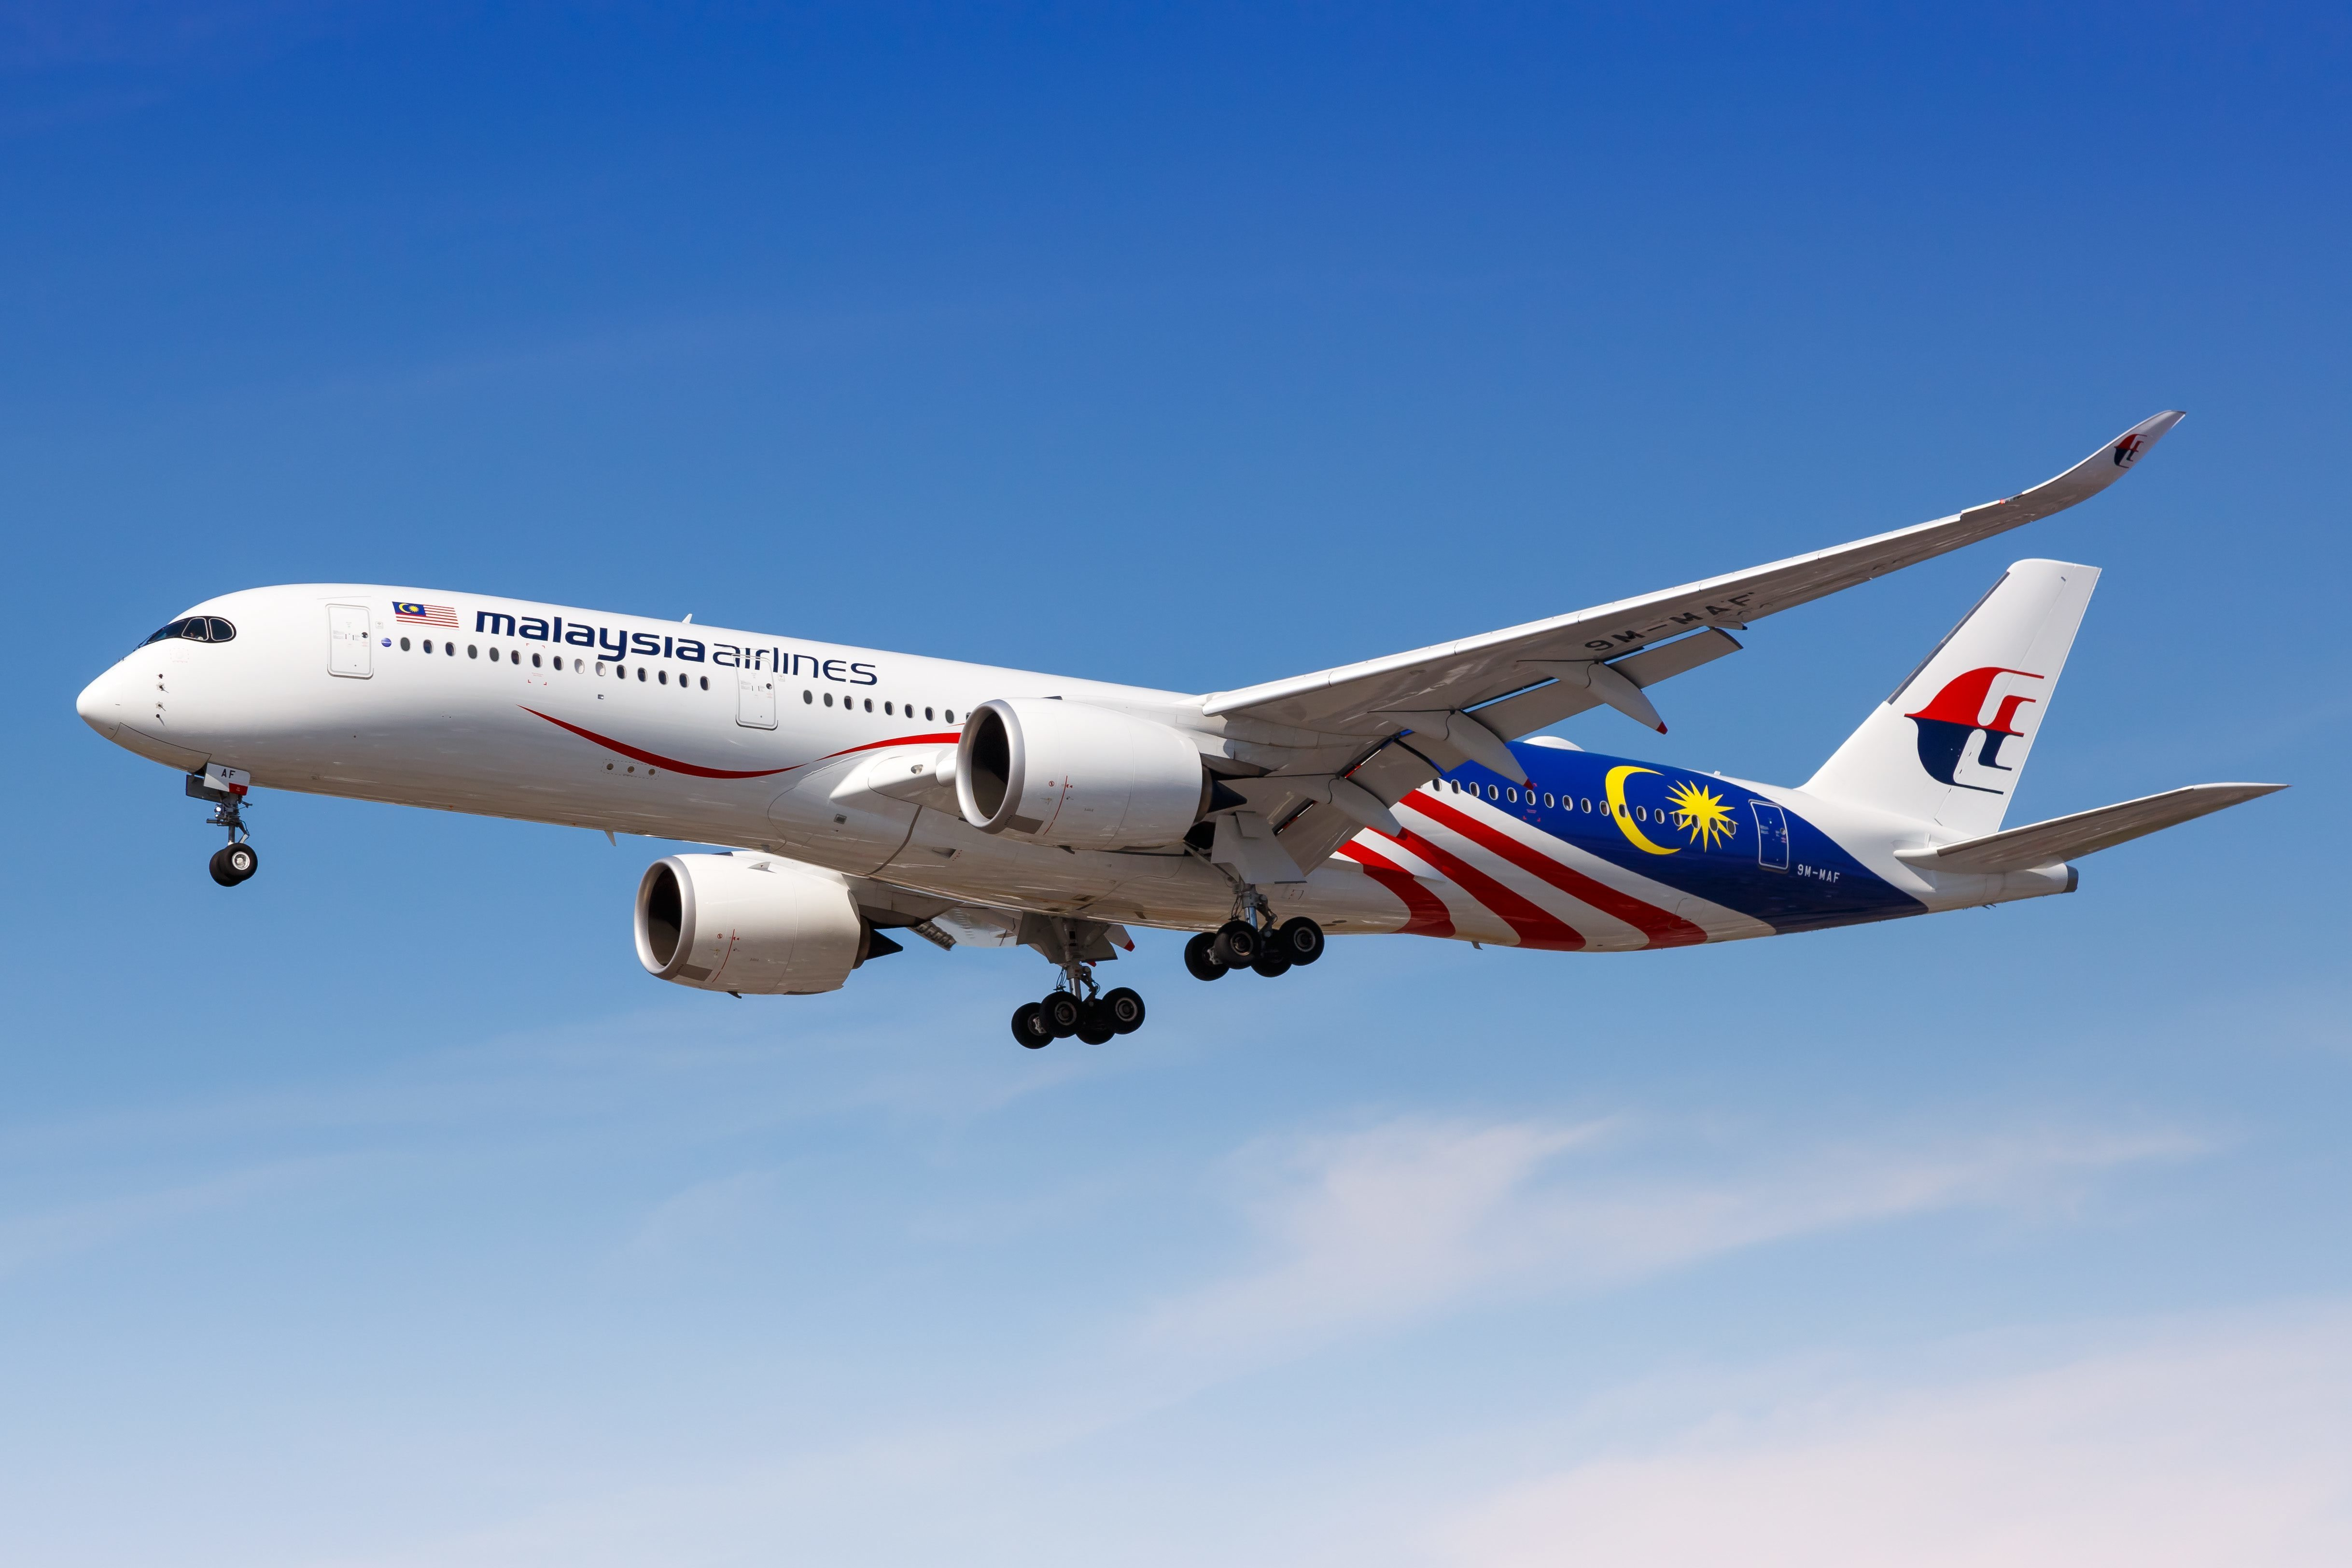 A Malaysia Airlines plane similar to MH370. Credit: PA